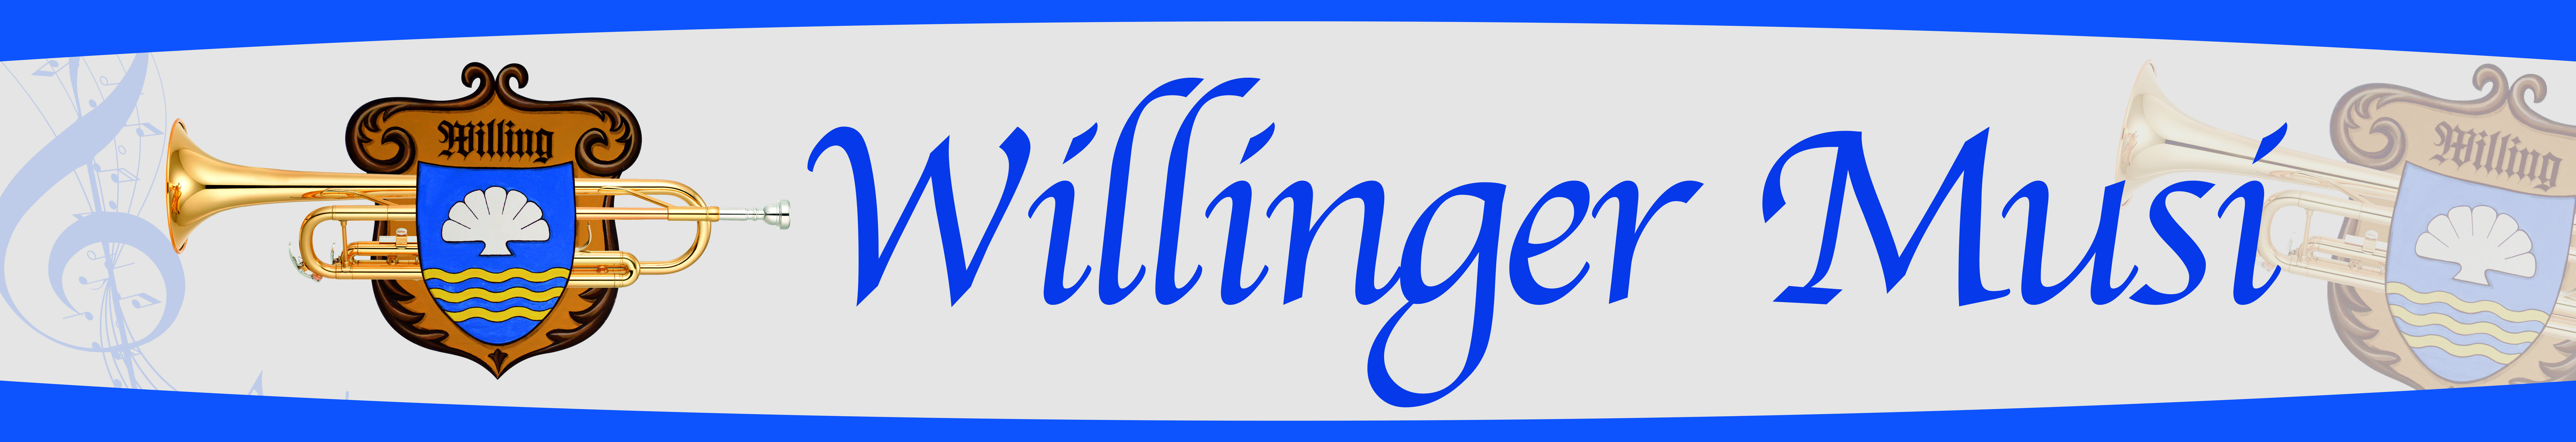 header willinger musi original